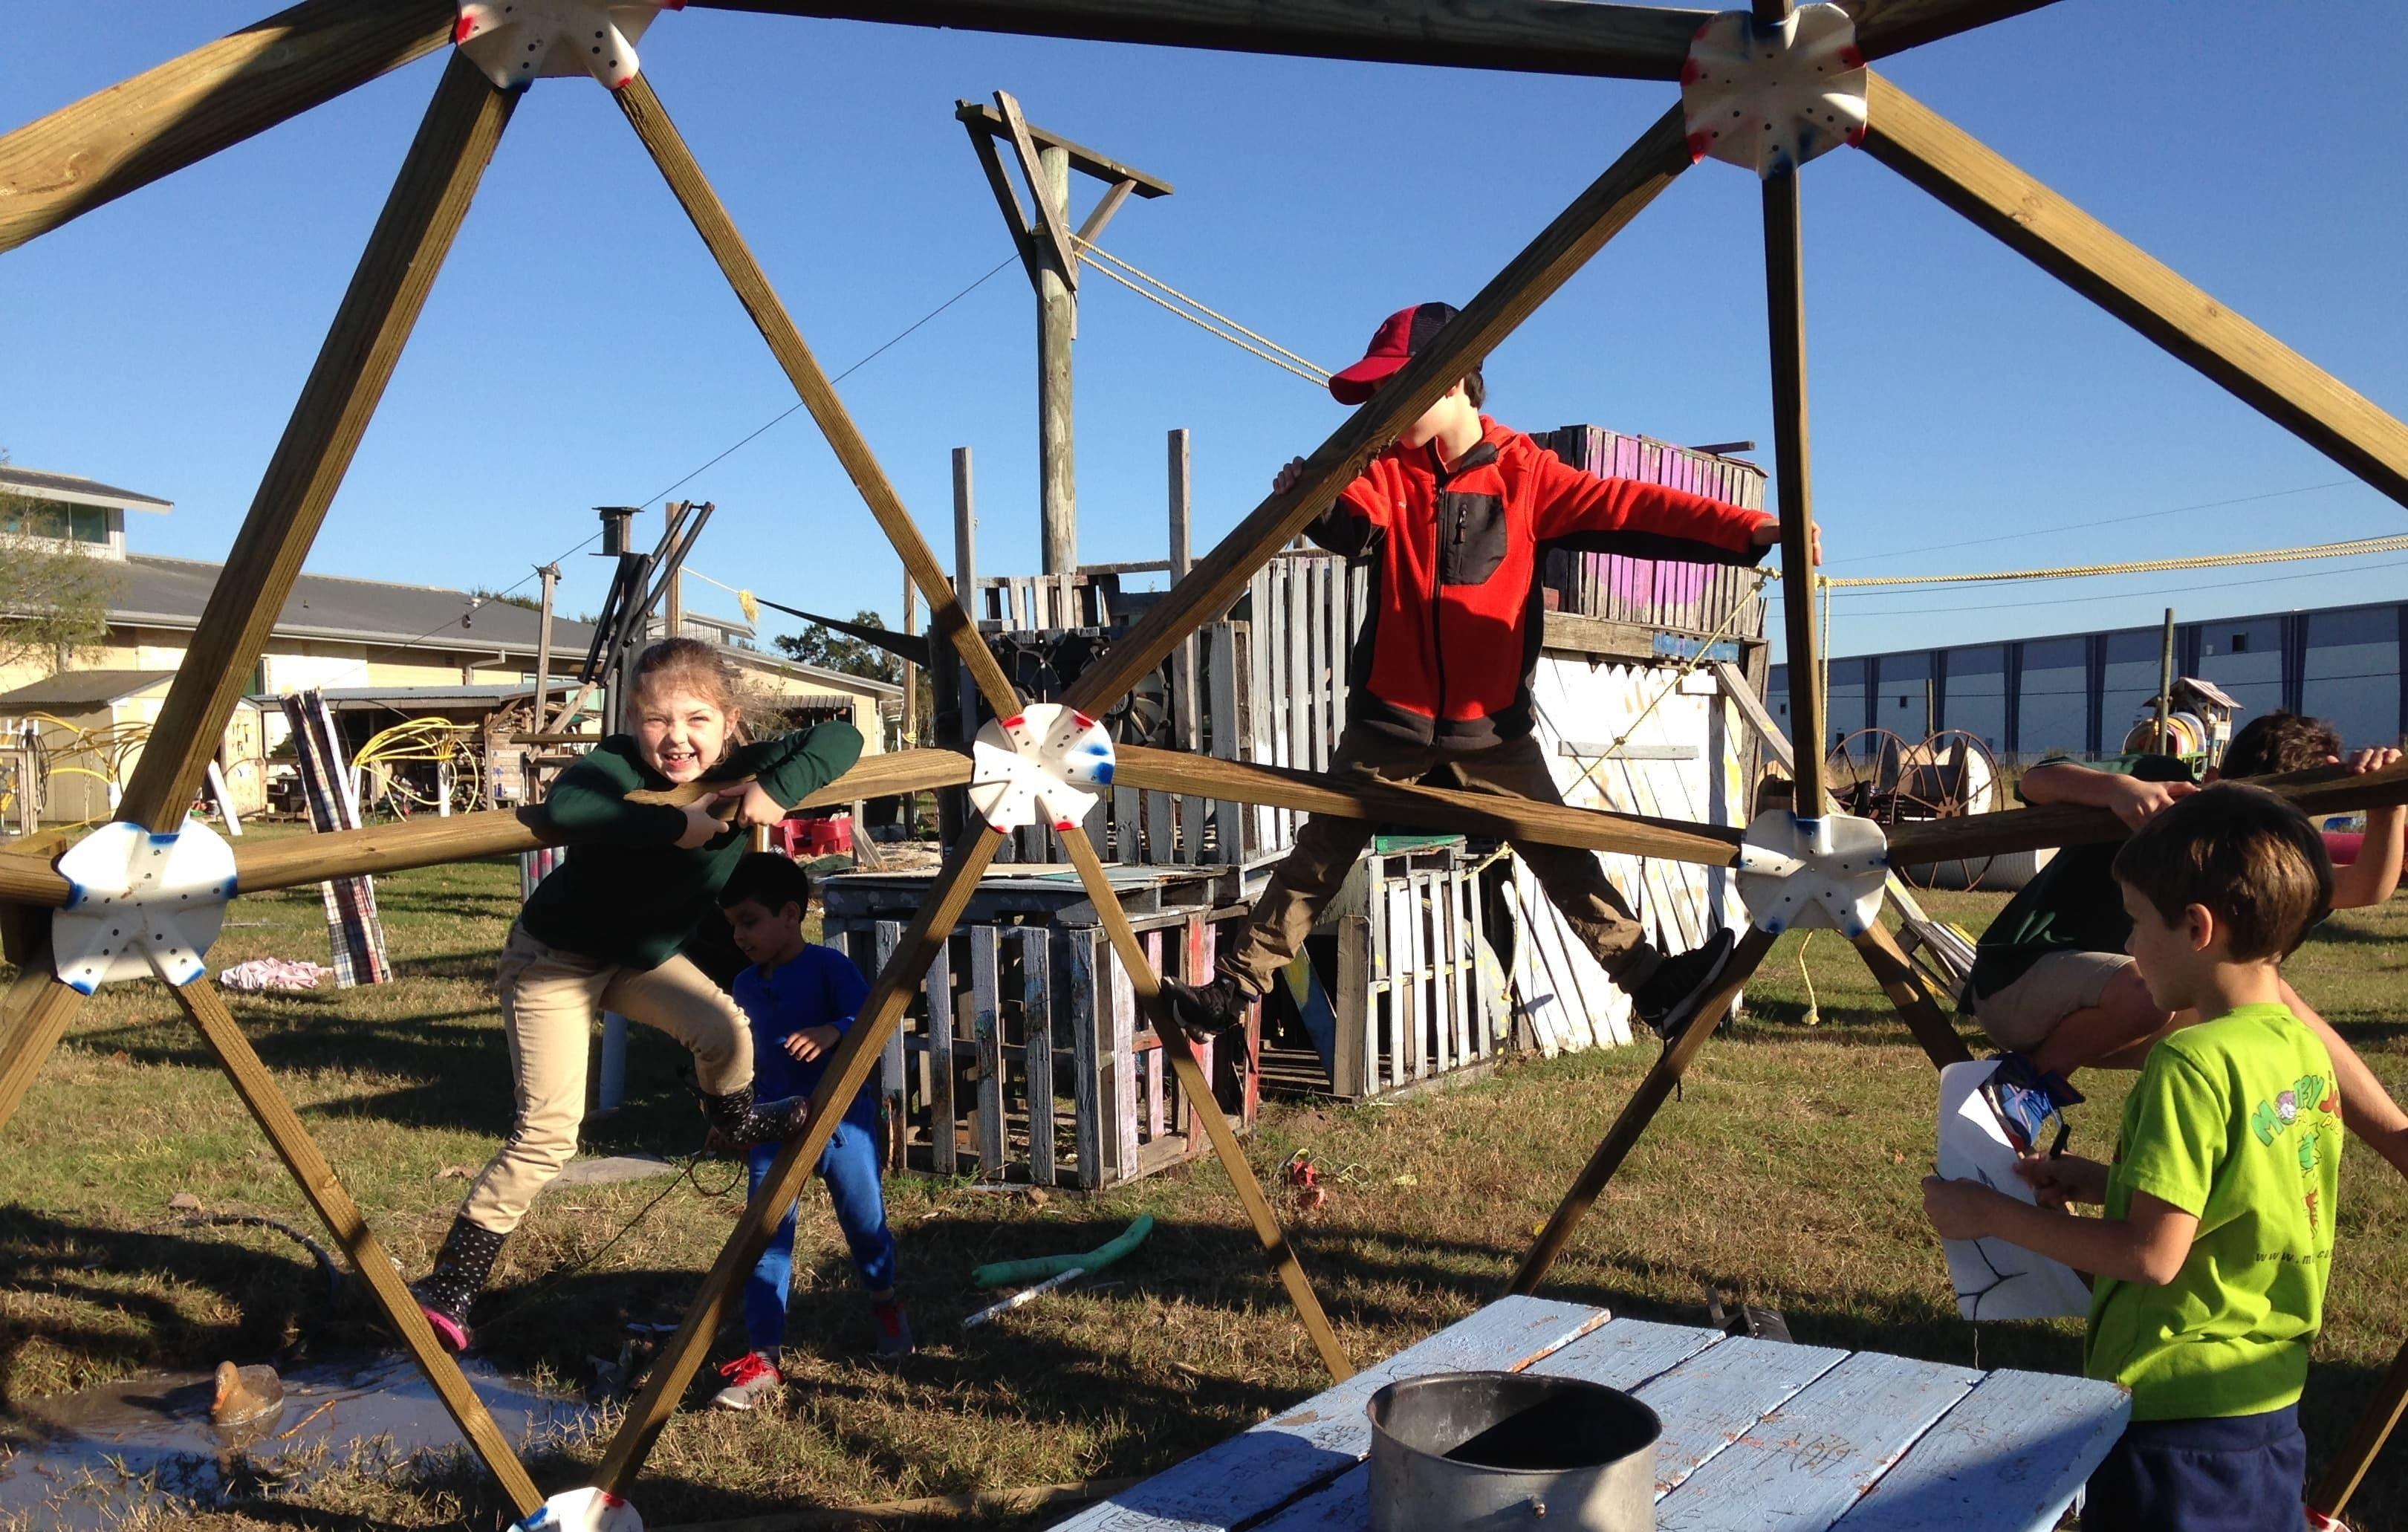 Adventure Play at Camp Acorn - climbing